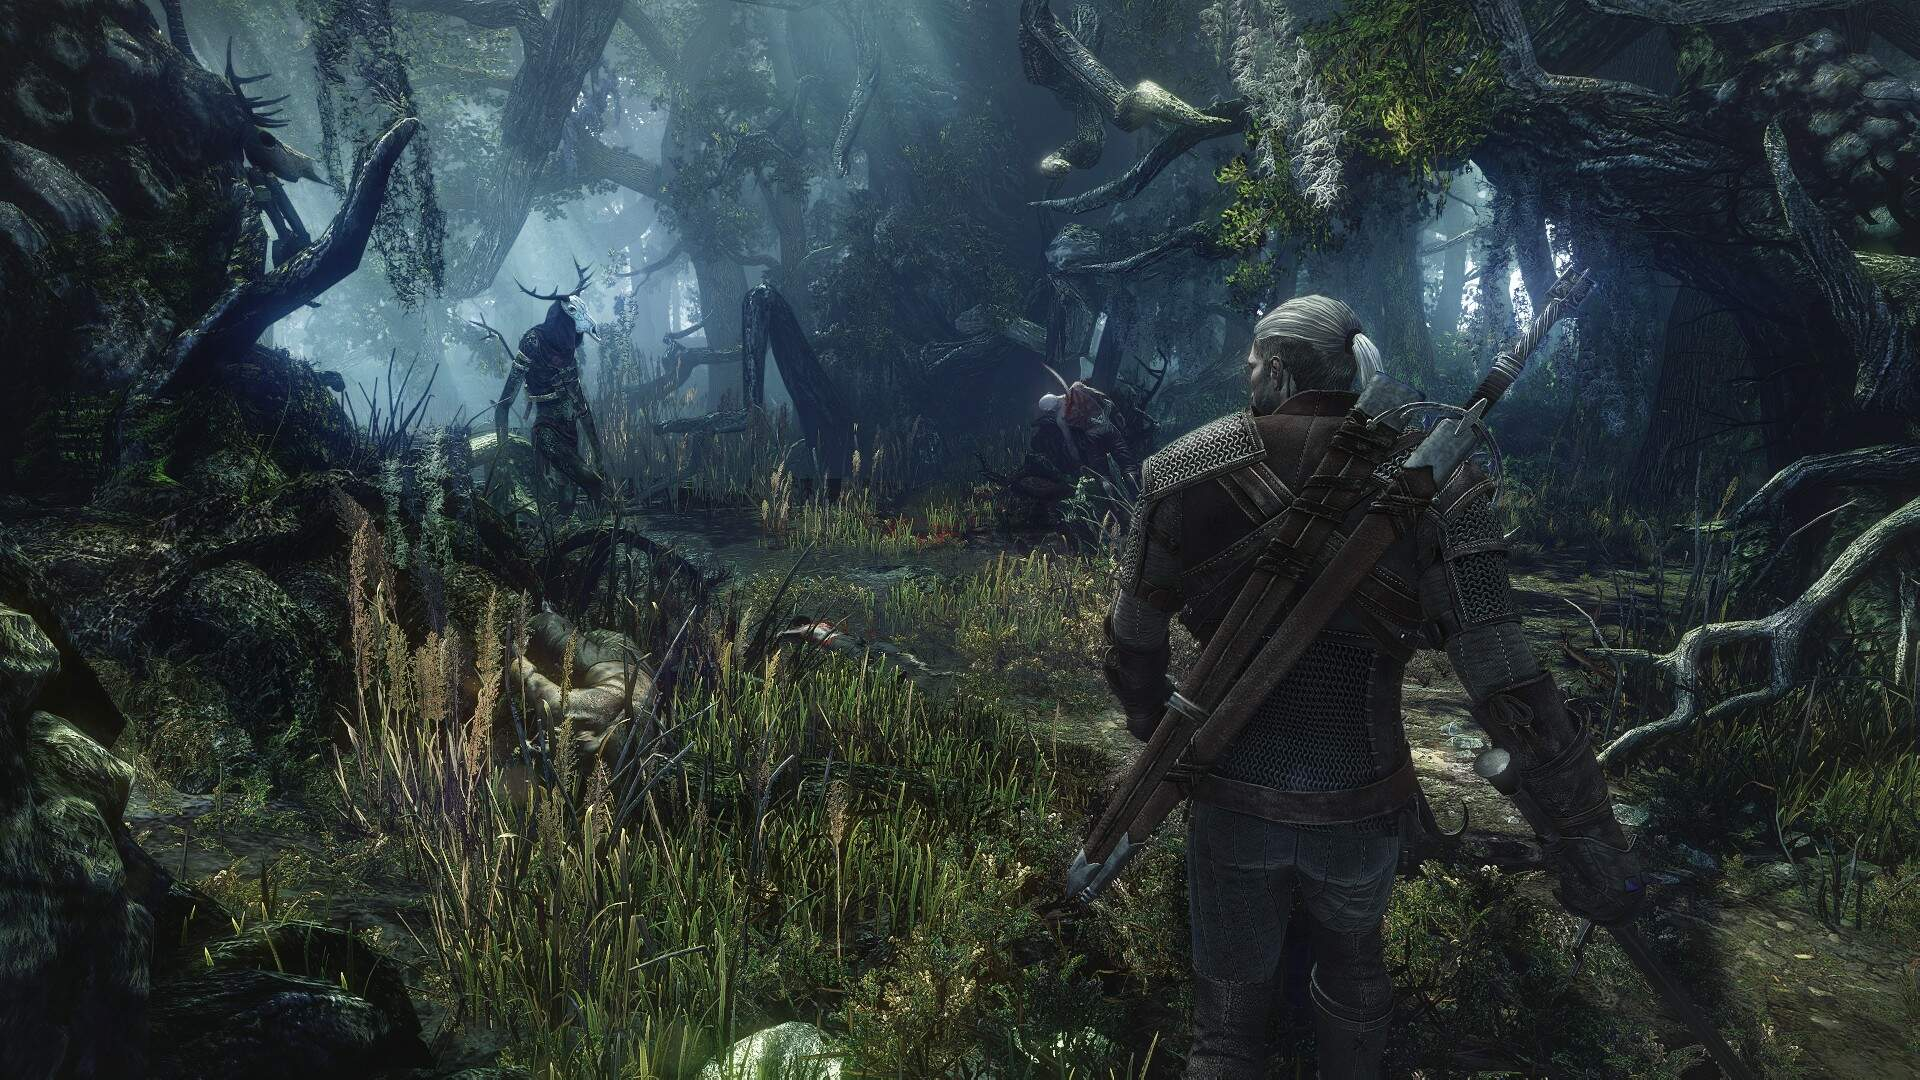 CD Projekt's Next Game Is Either More Cyberpunk or Another Witcher